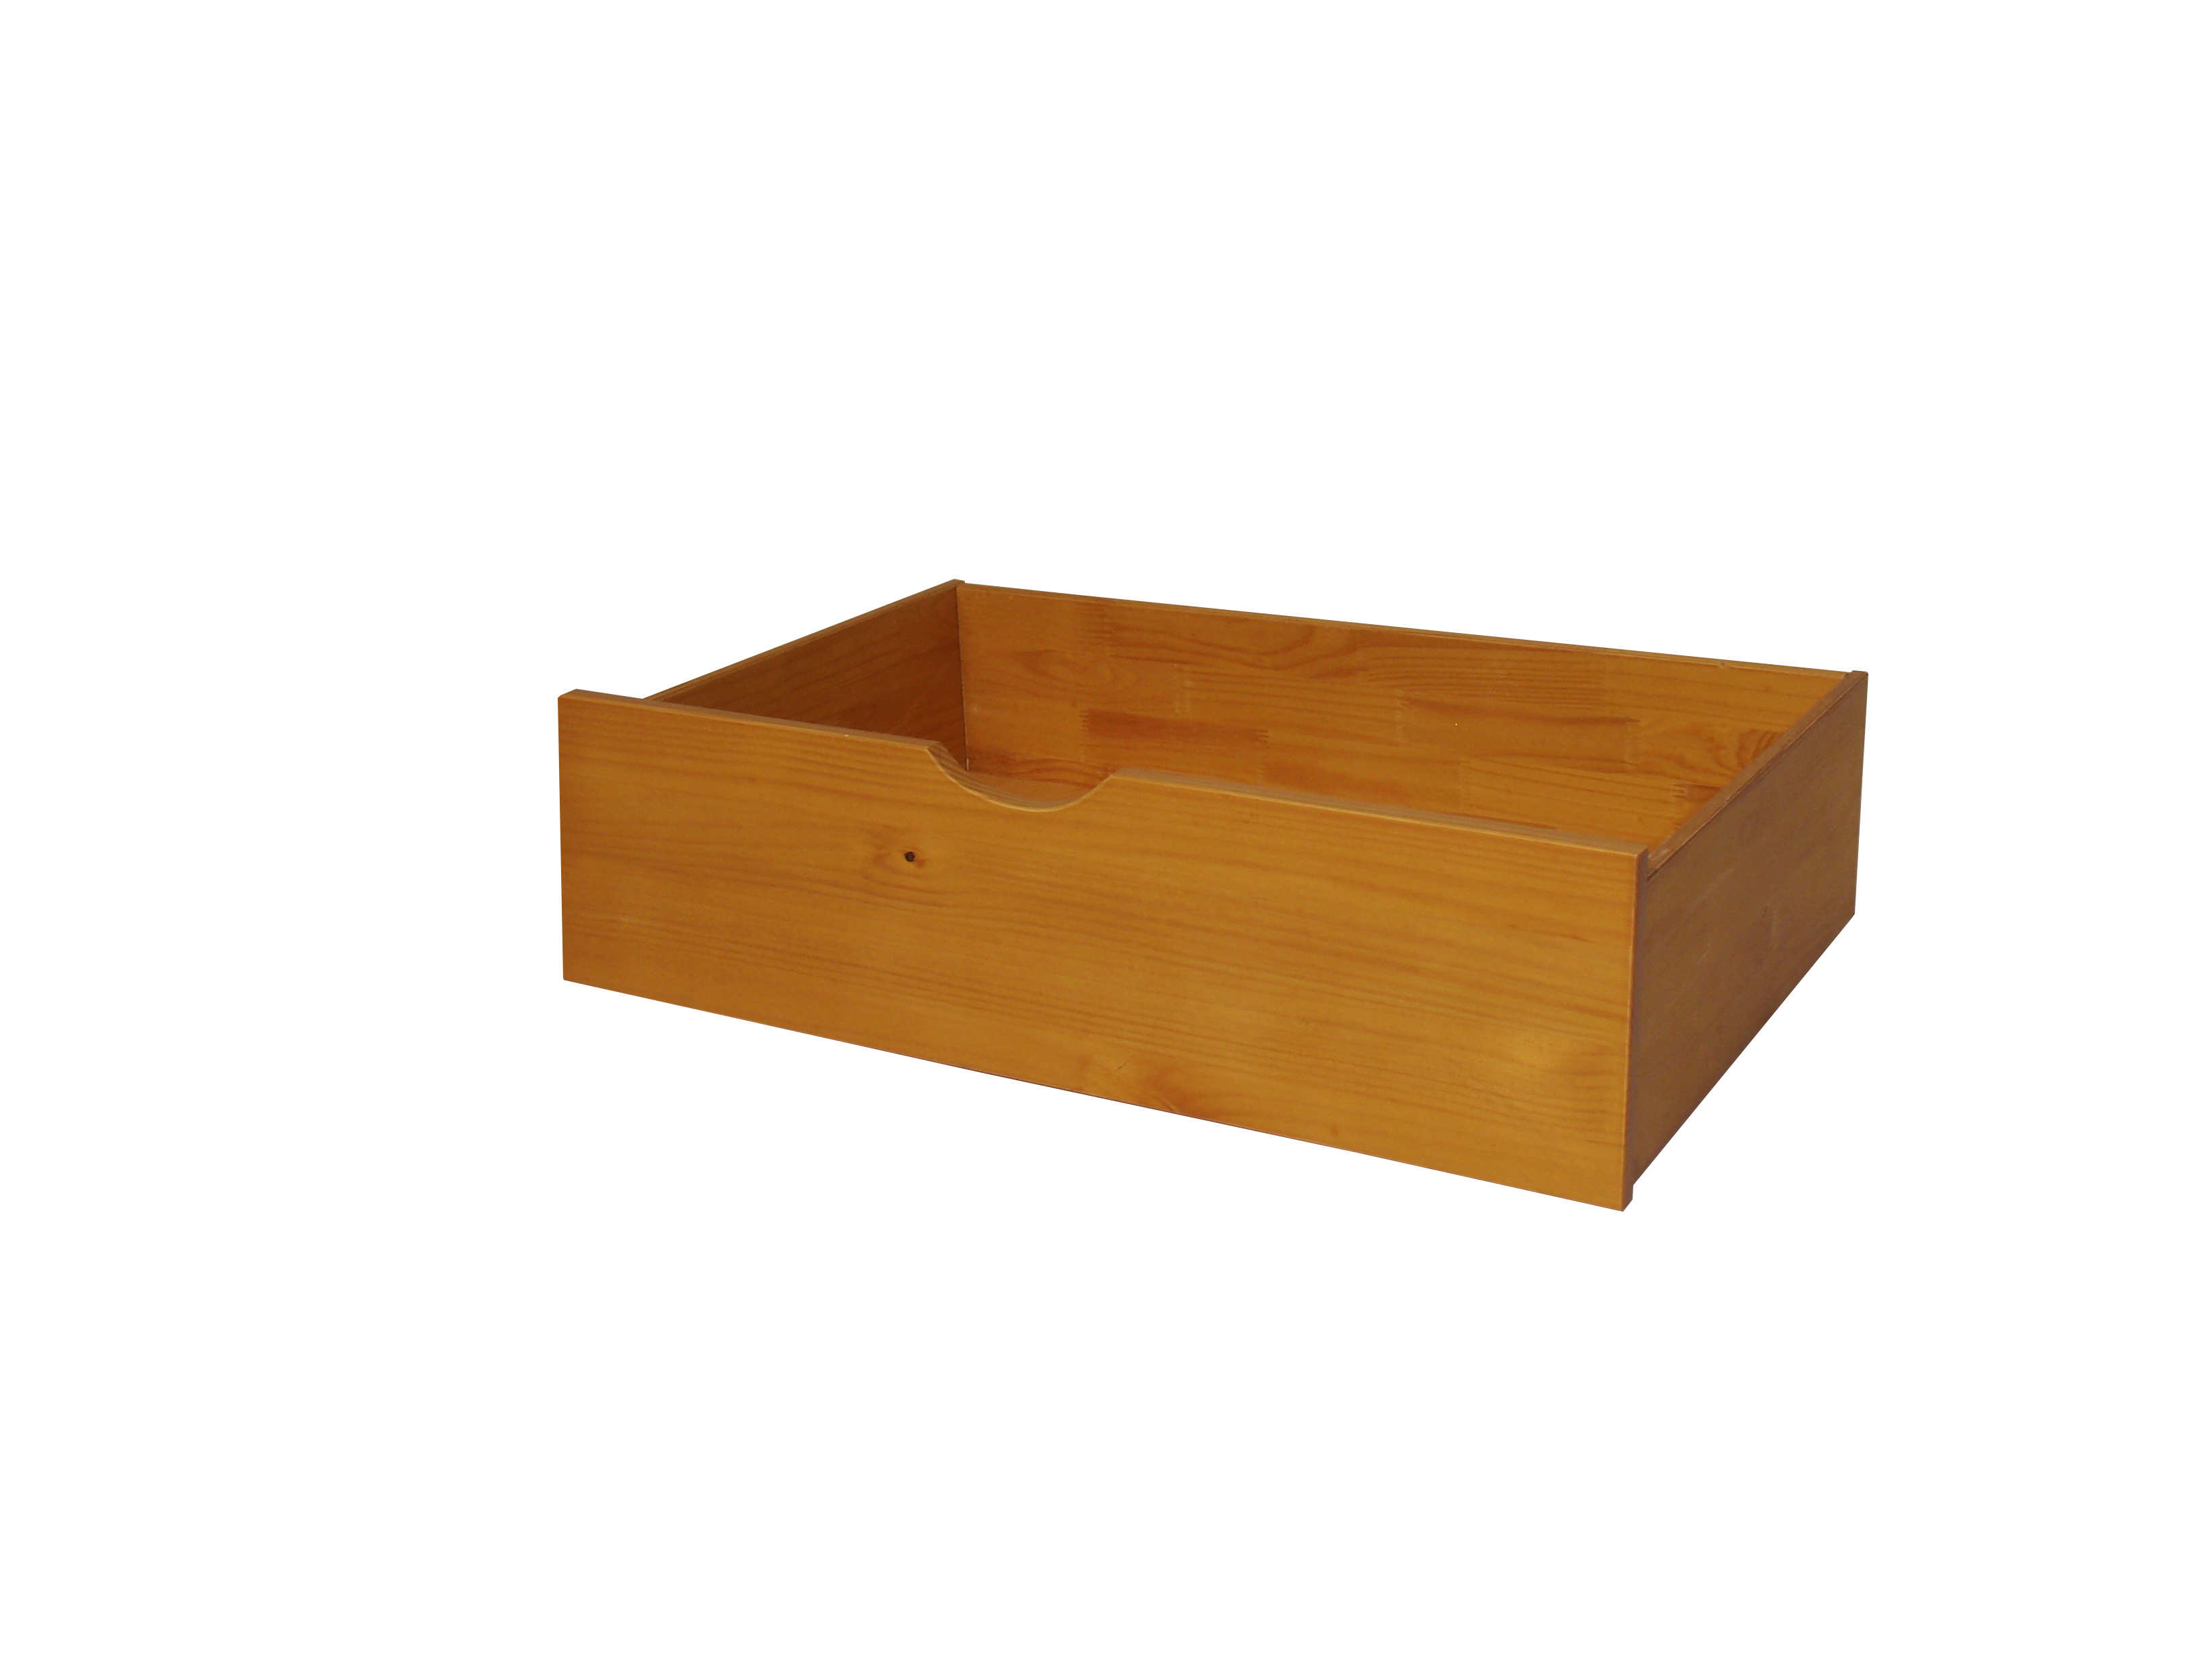 UNDER-BED DRAWERS IN HONEY PINE